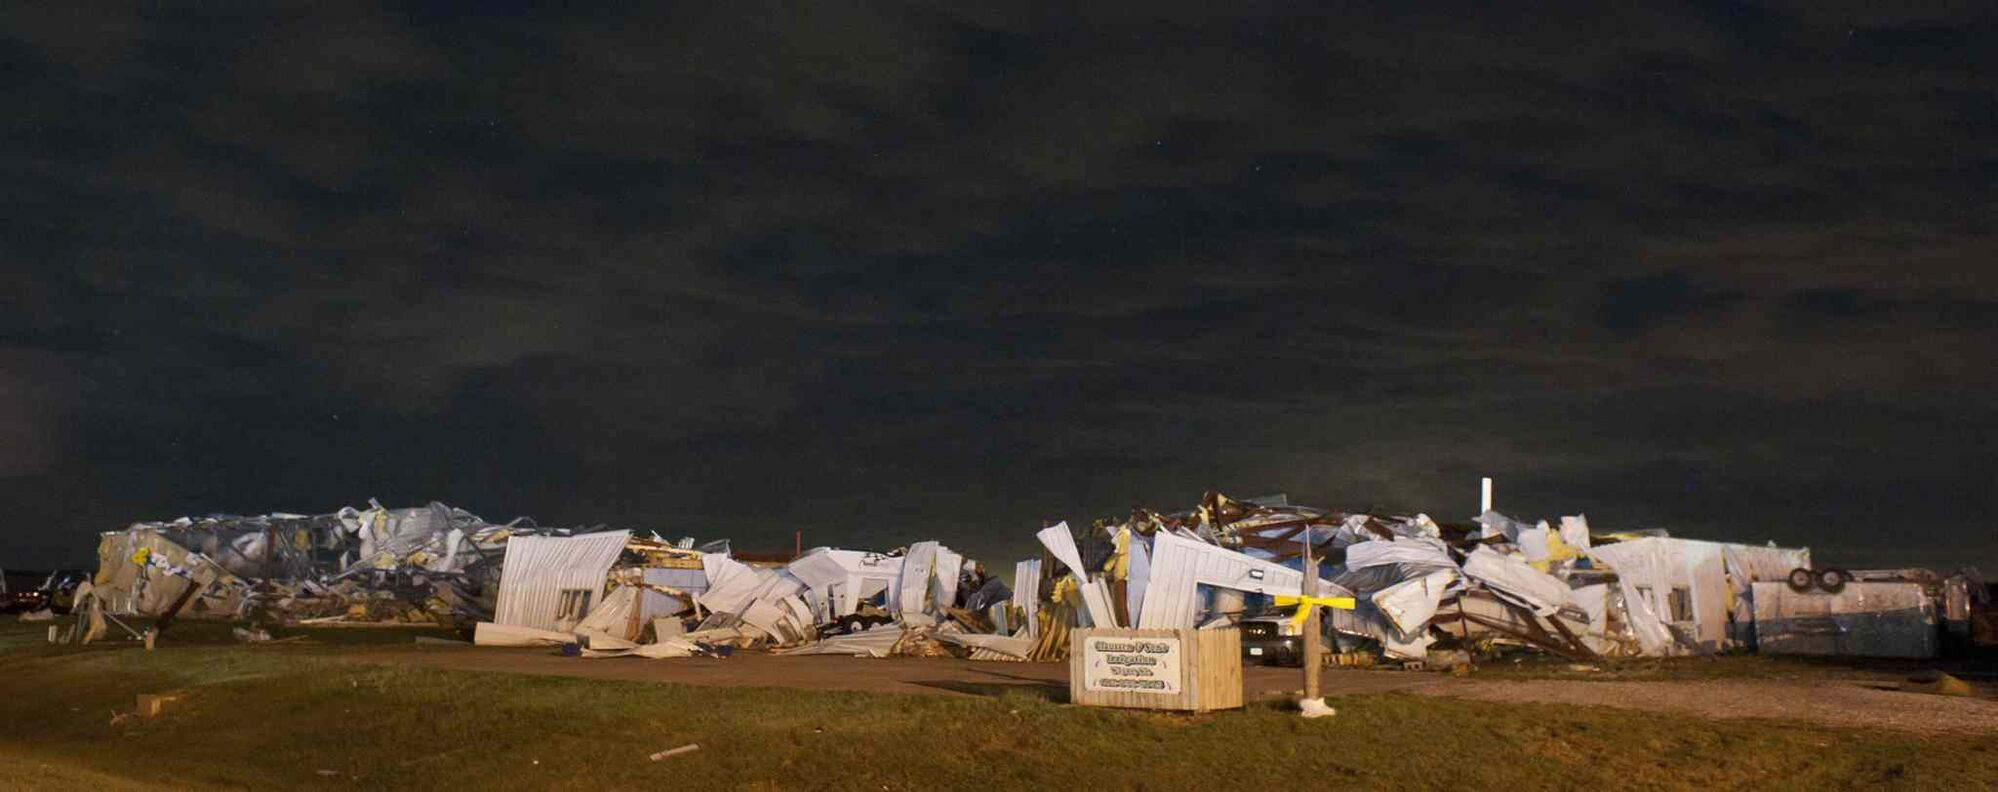 Several buildings sit damaged Saturday in Wayne, Neb. after witnesses said tornadoes swept through the southeast corner of the community. Some of the greatest damage from tornadoes seemed to be in Wayne, Neb., a town of 9,600 where witnesses said at least four homes were destroyed.   (Dave Weaver / The Associated press)